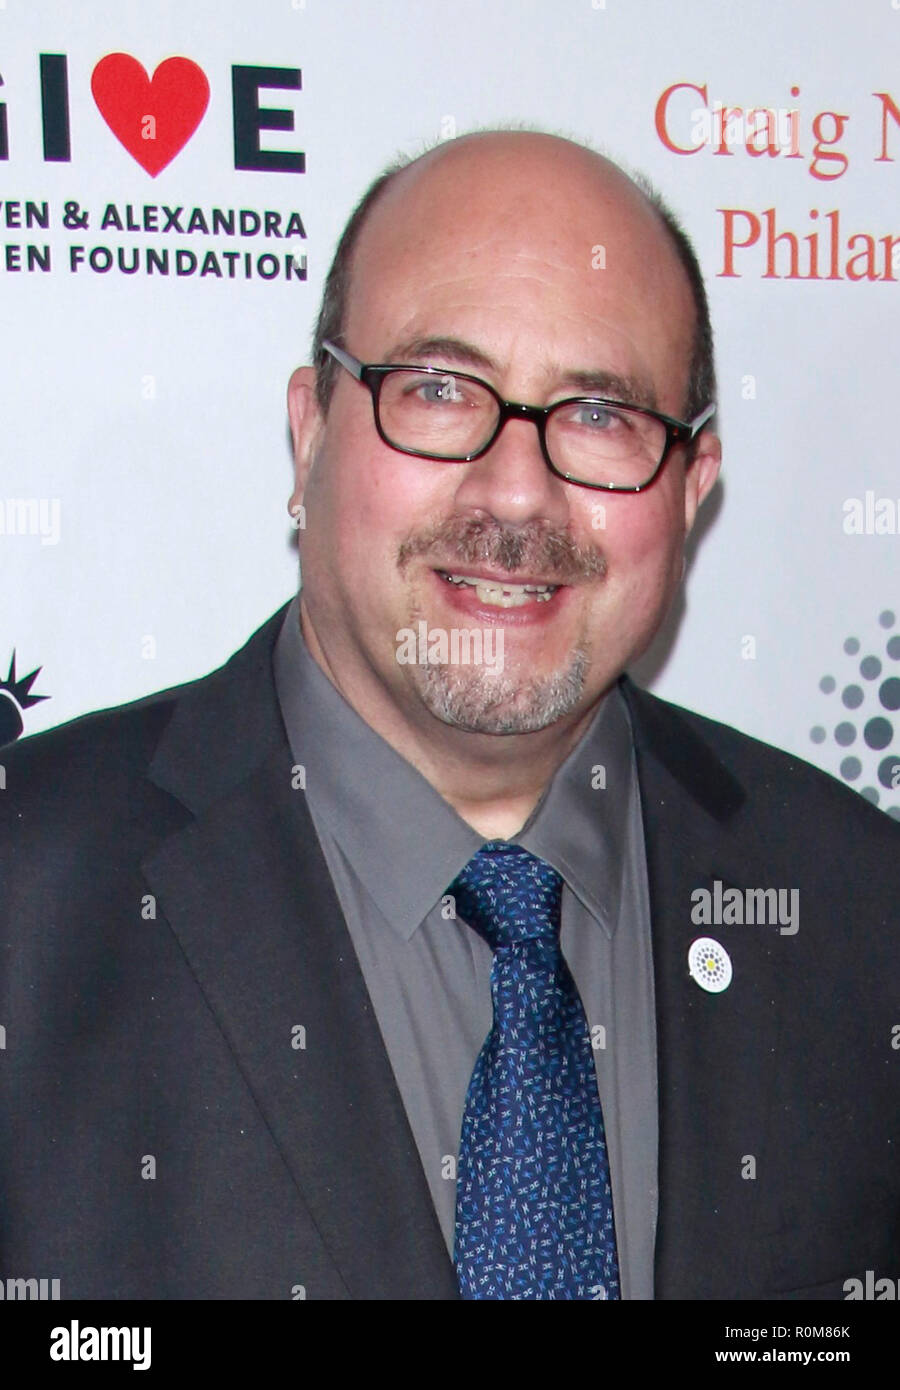 New York, NY, USA. 5th Nov, 2018. Craig Newmark at the 12th Annual Stand Up For Heroes event honoring veterans at The Hulu Theater at Madison Square Garden in New York City on November 5, 2018. Credit: Diego Corredor/Media Punch/Alamy Live News Stock Photo